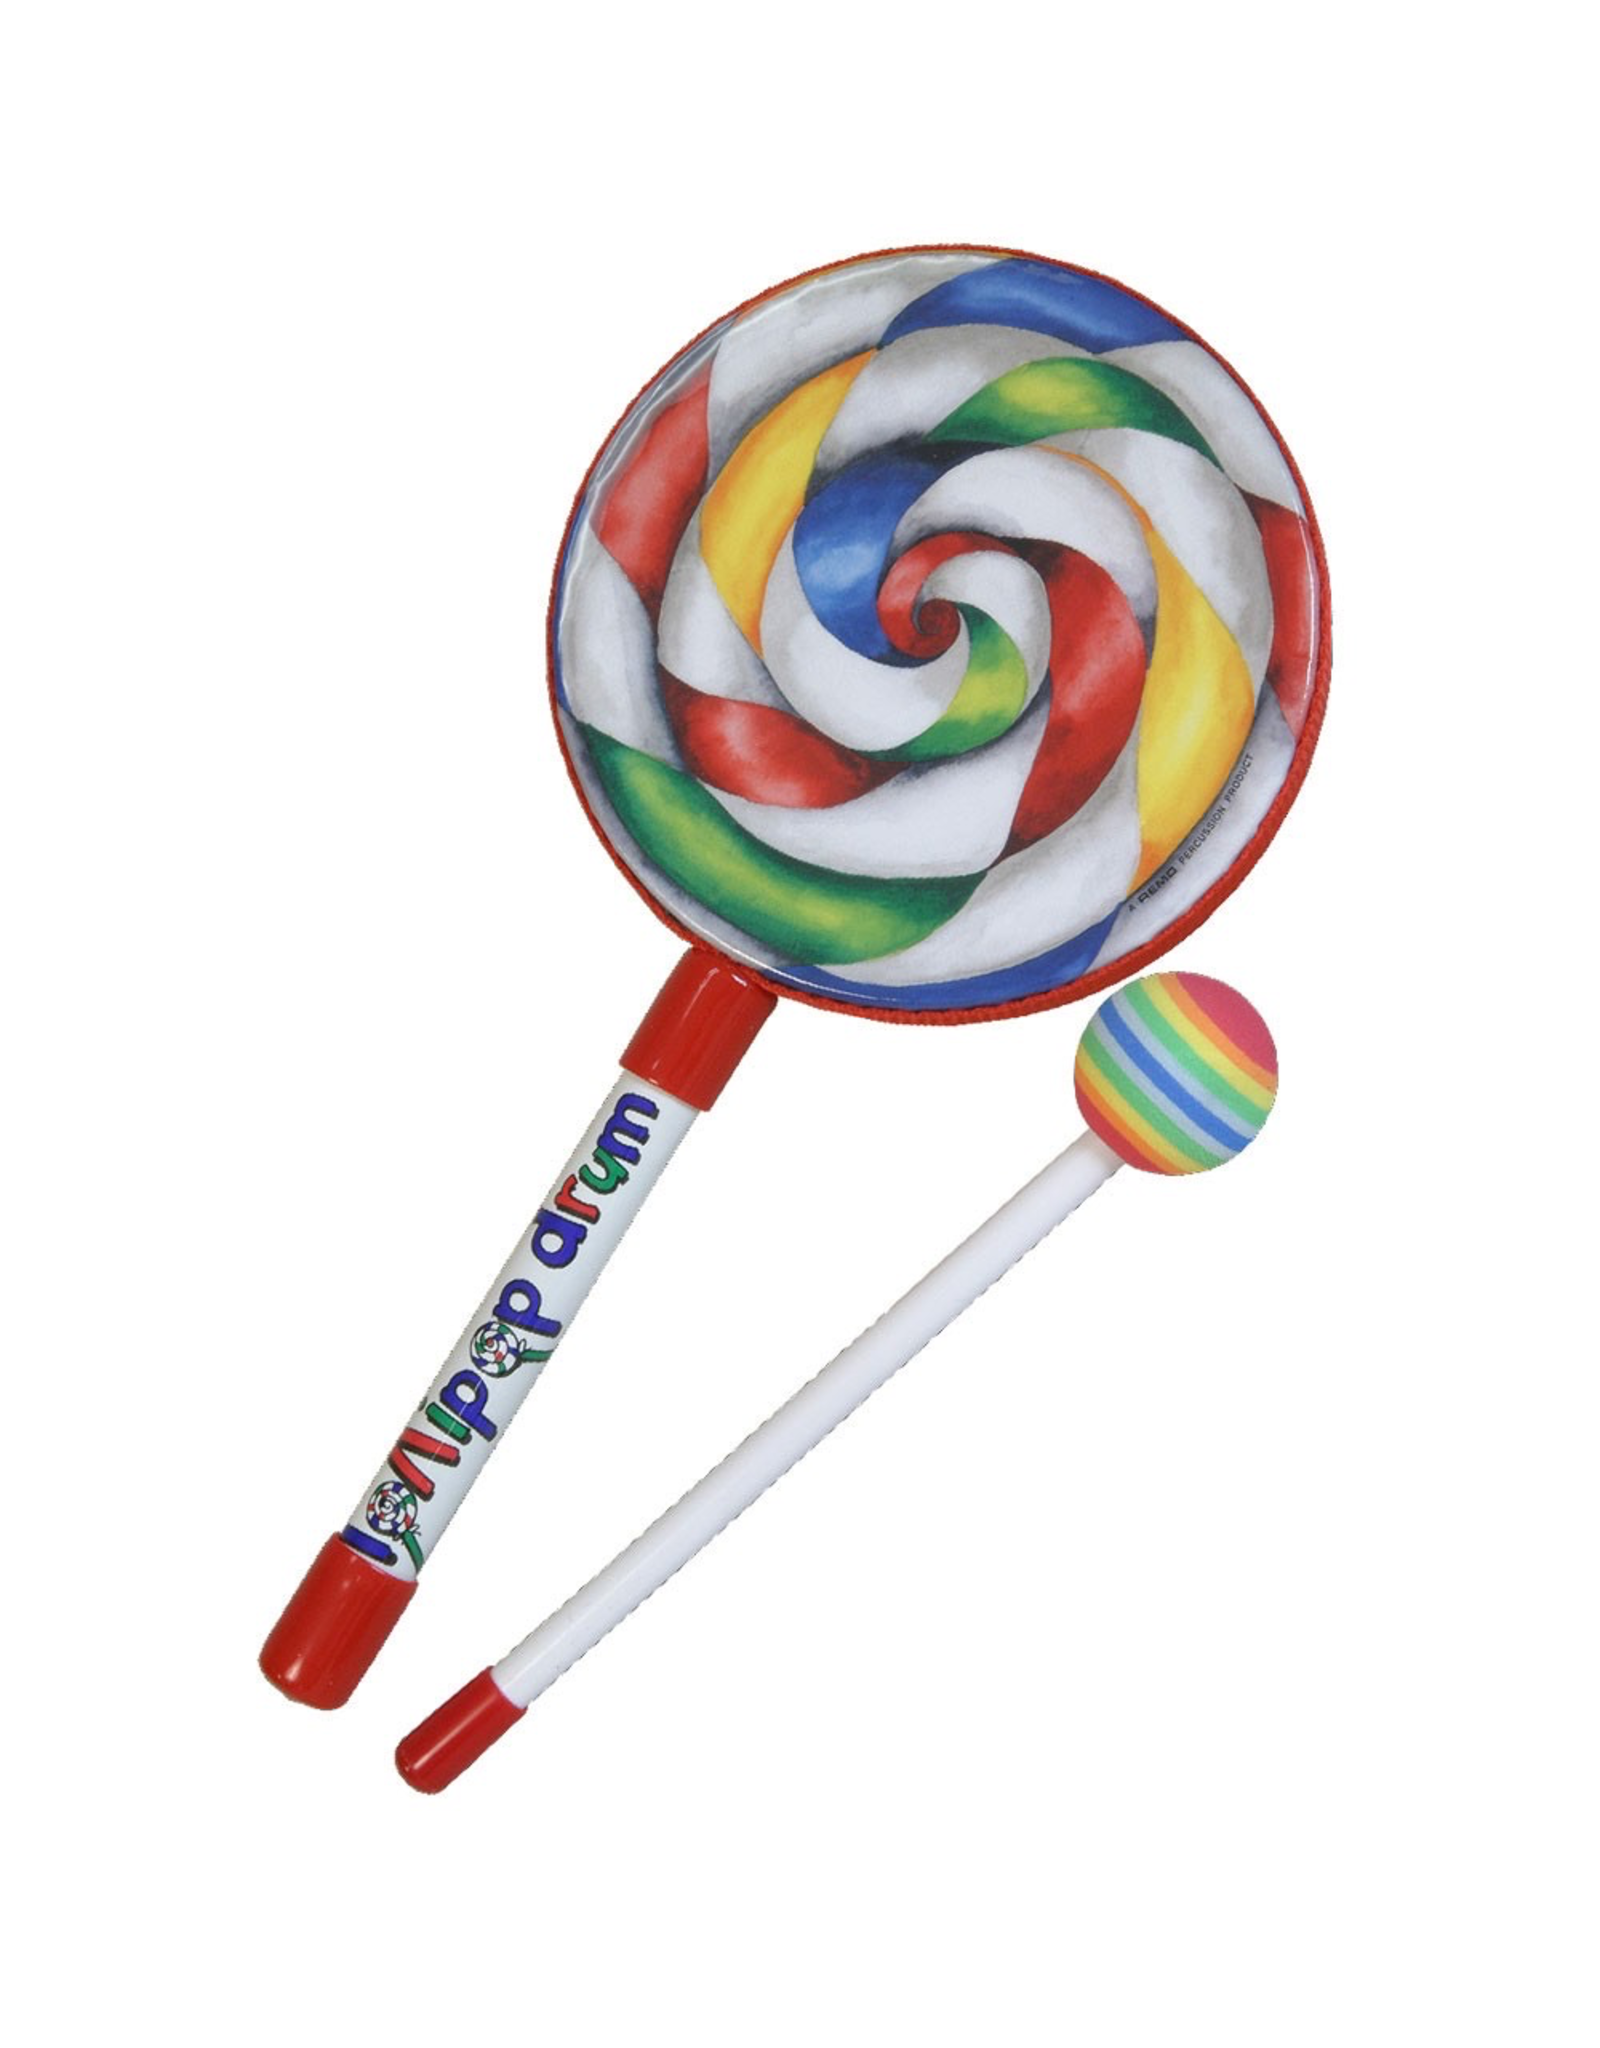 Remo REMO LOLLIPOP DRUM 6 INCH WITH MALLET